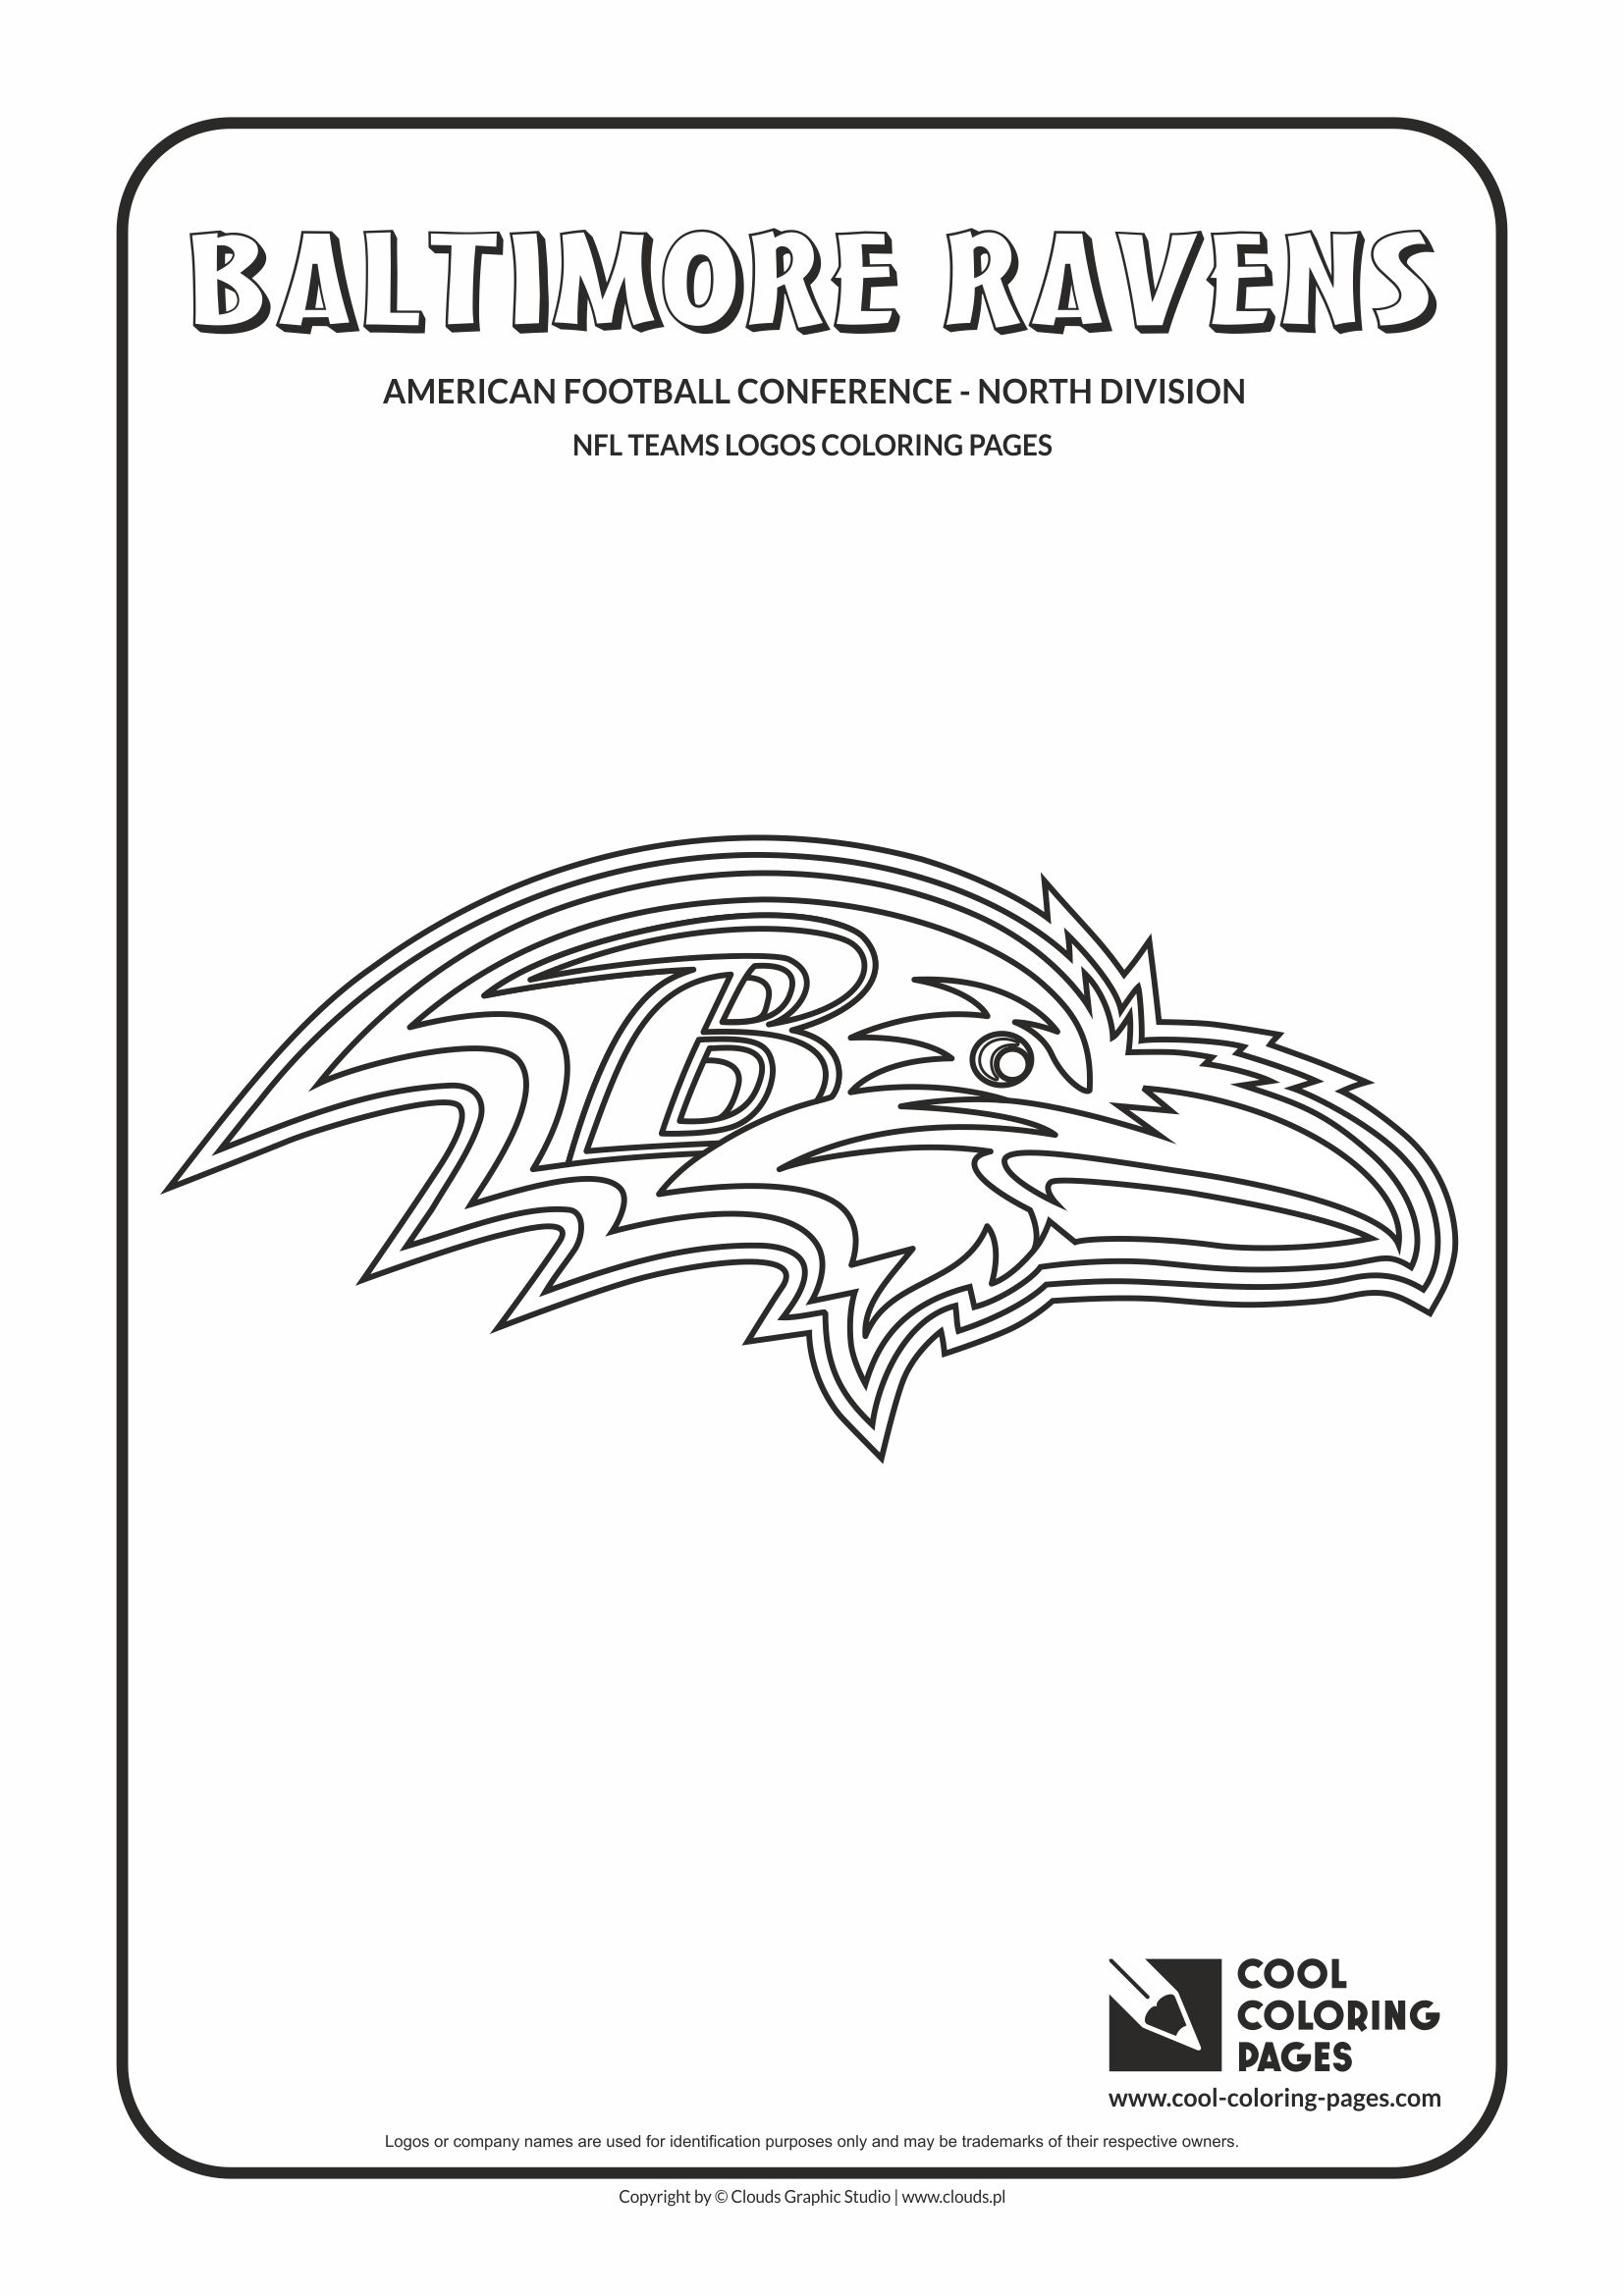 Cool Coloring Pages - NFL American Football Clubs Logos - American Football Conference - North Division / Baltimore Ravens logo / Coloring page with Baltimore Ravens logo